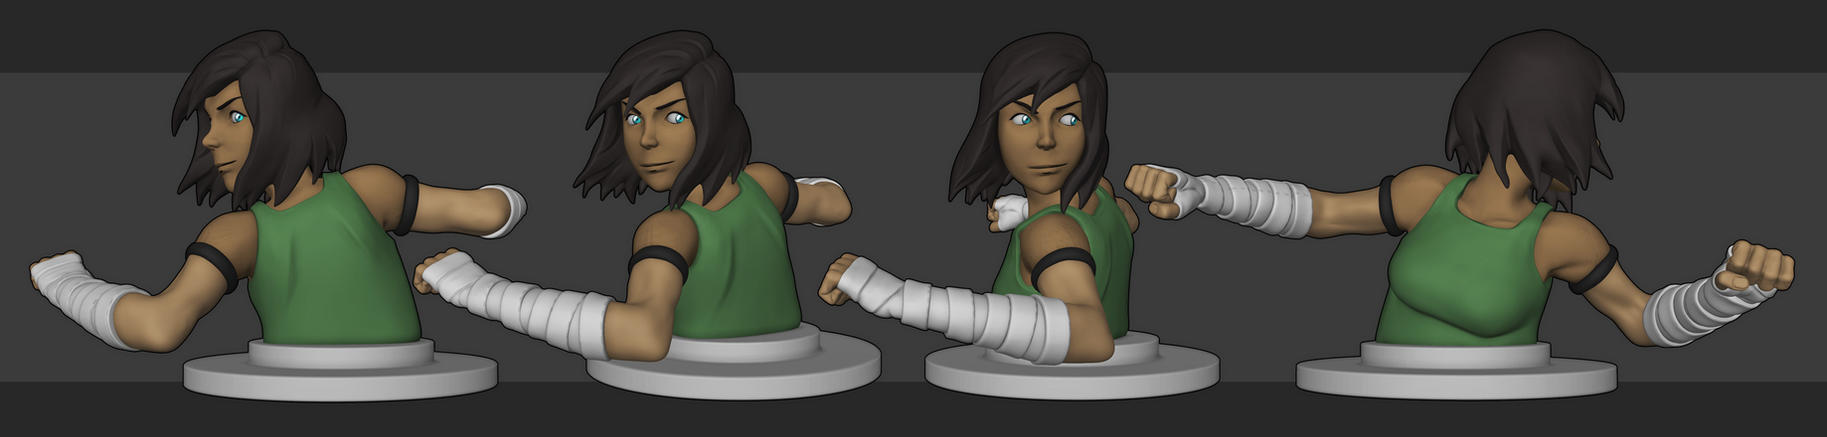 [WIP/2] Korra - Earth Kingdom Outfit by YuliusKrisna